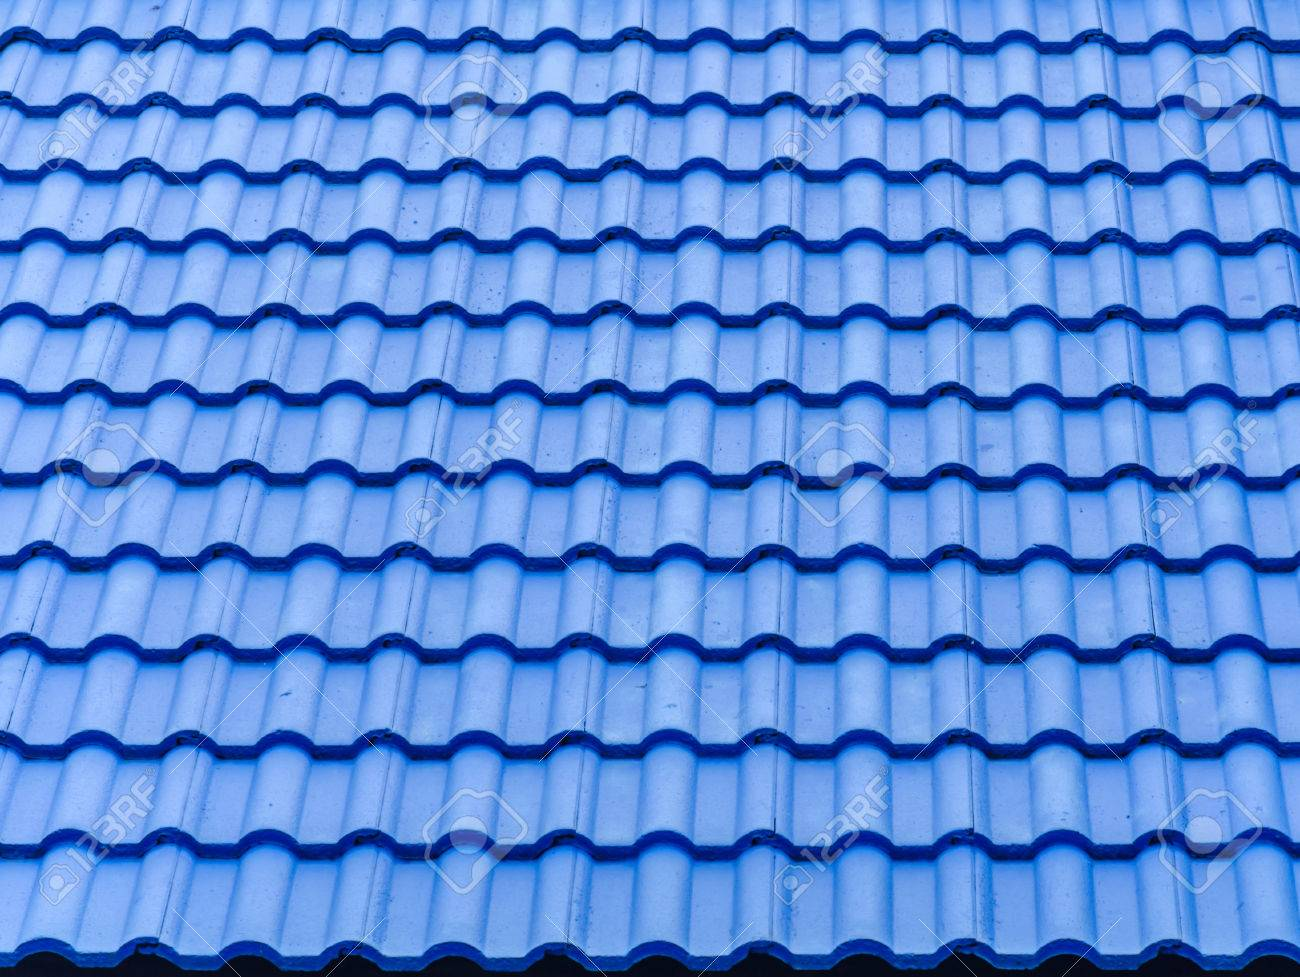 ceramic tile roof with blue color